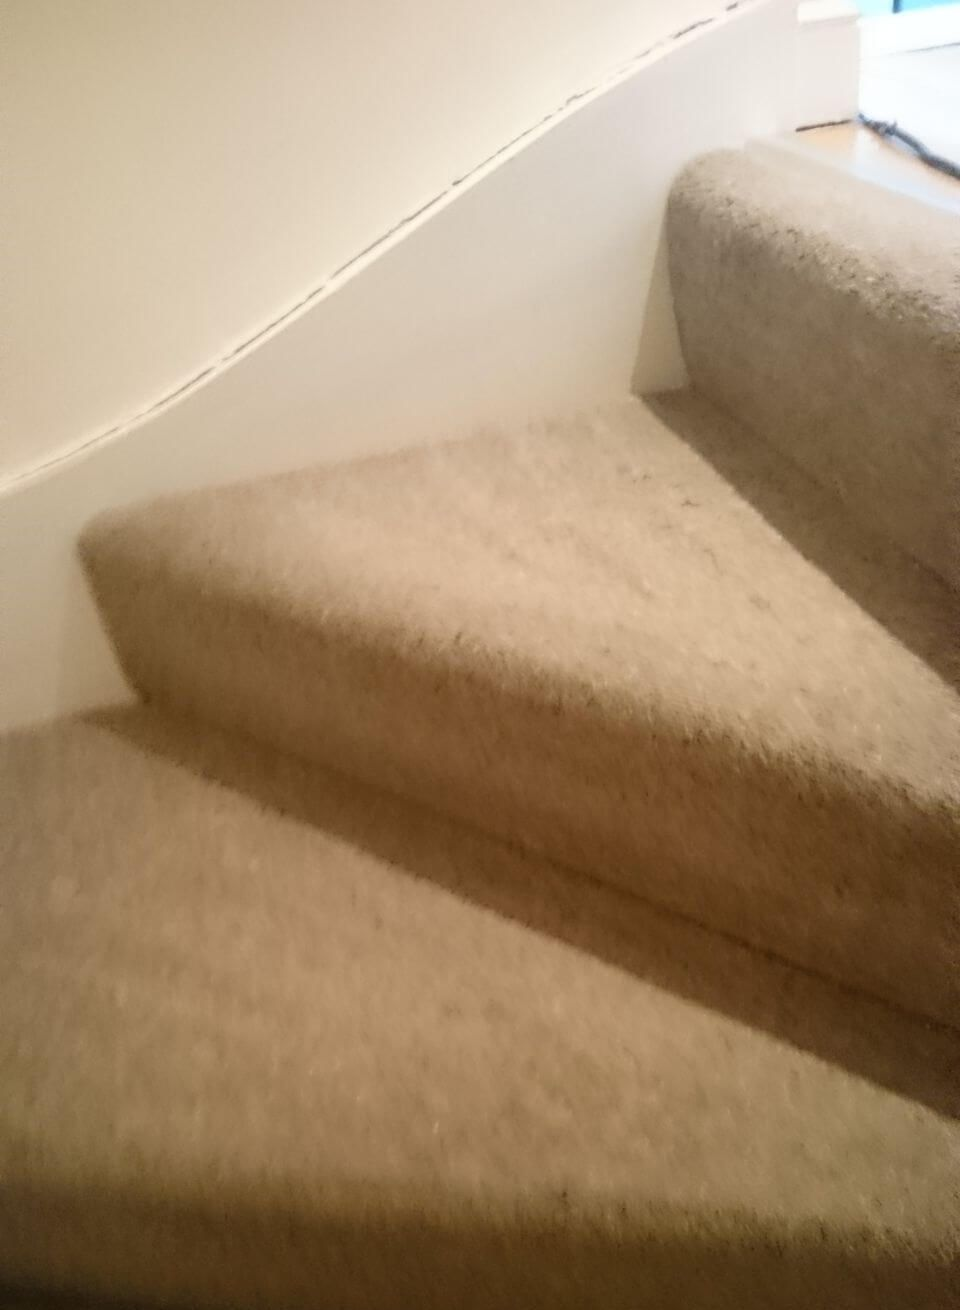 mattress cleaning service in Ponders End